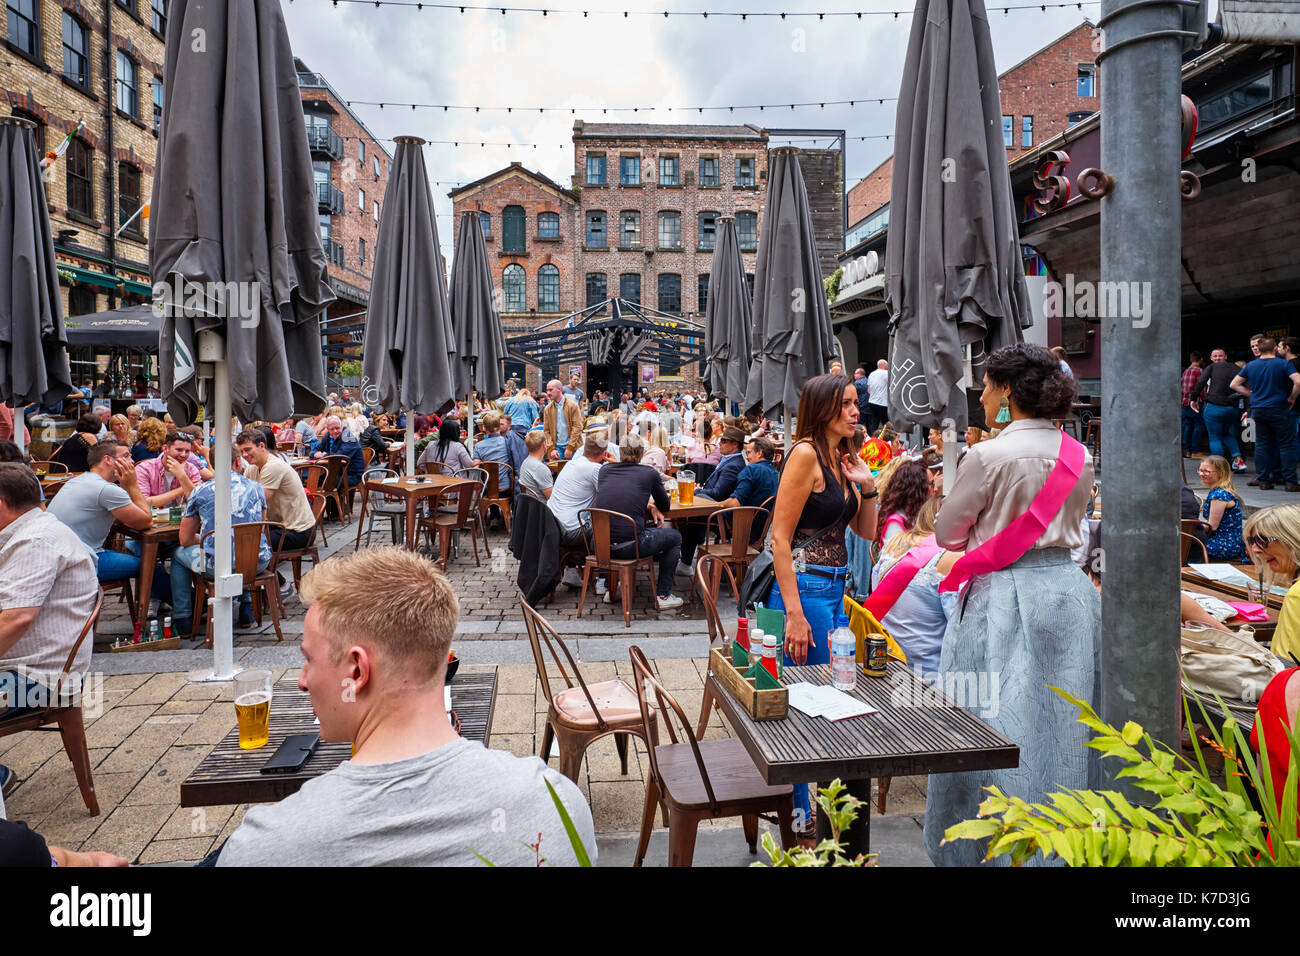 Drinkers on a Saturday afternoon in Soho bar in Bold Street area, Liverpool - Stock Image